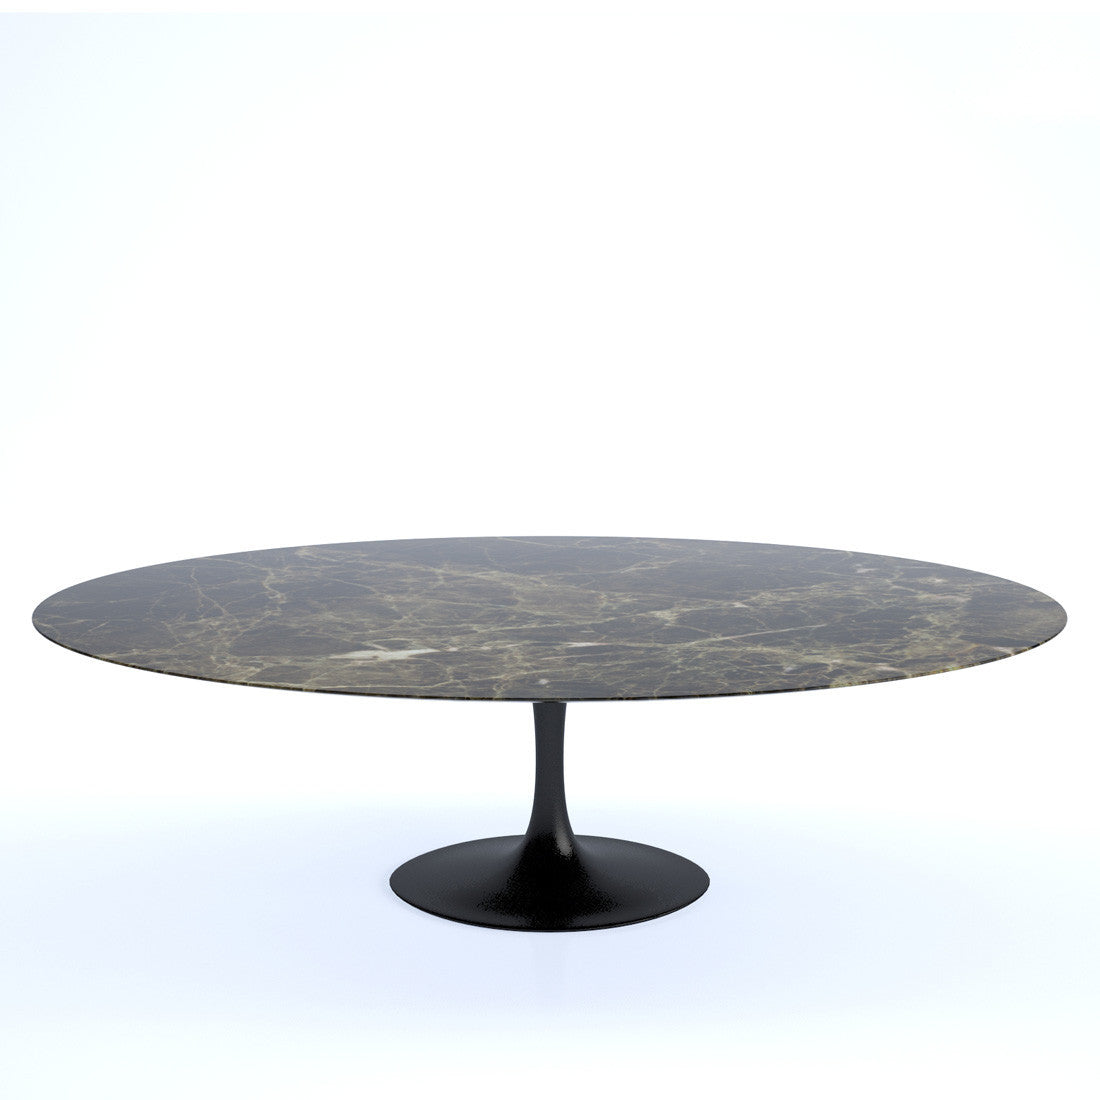 Tulip Oval Dining Table By Knoll U2014 Haus®